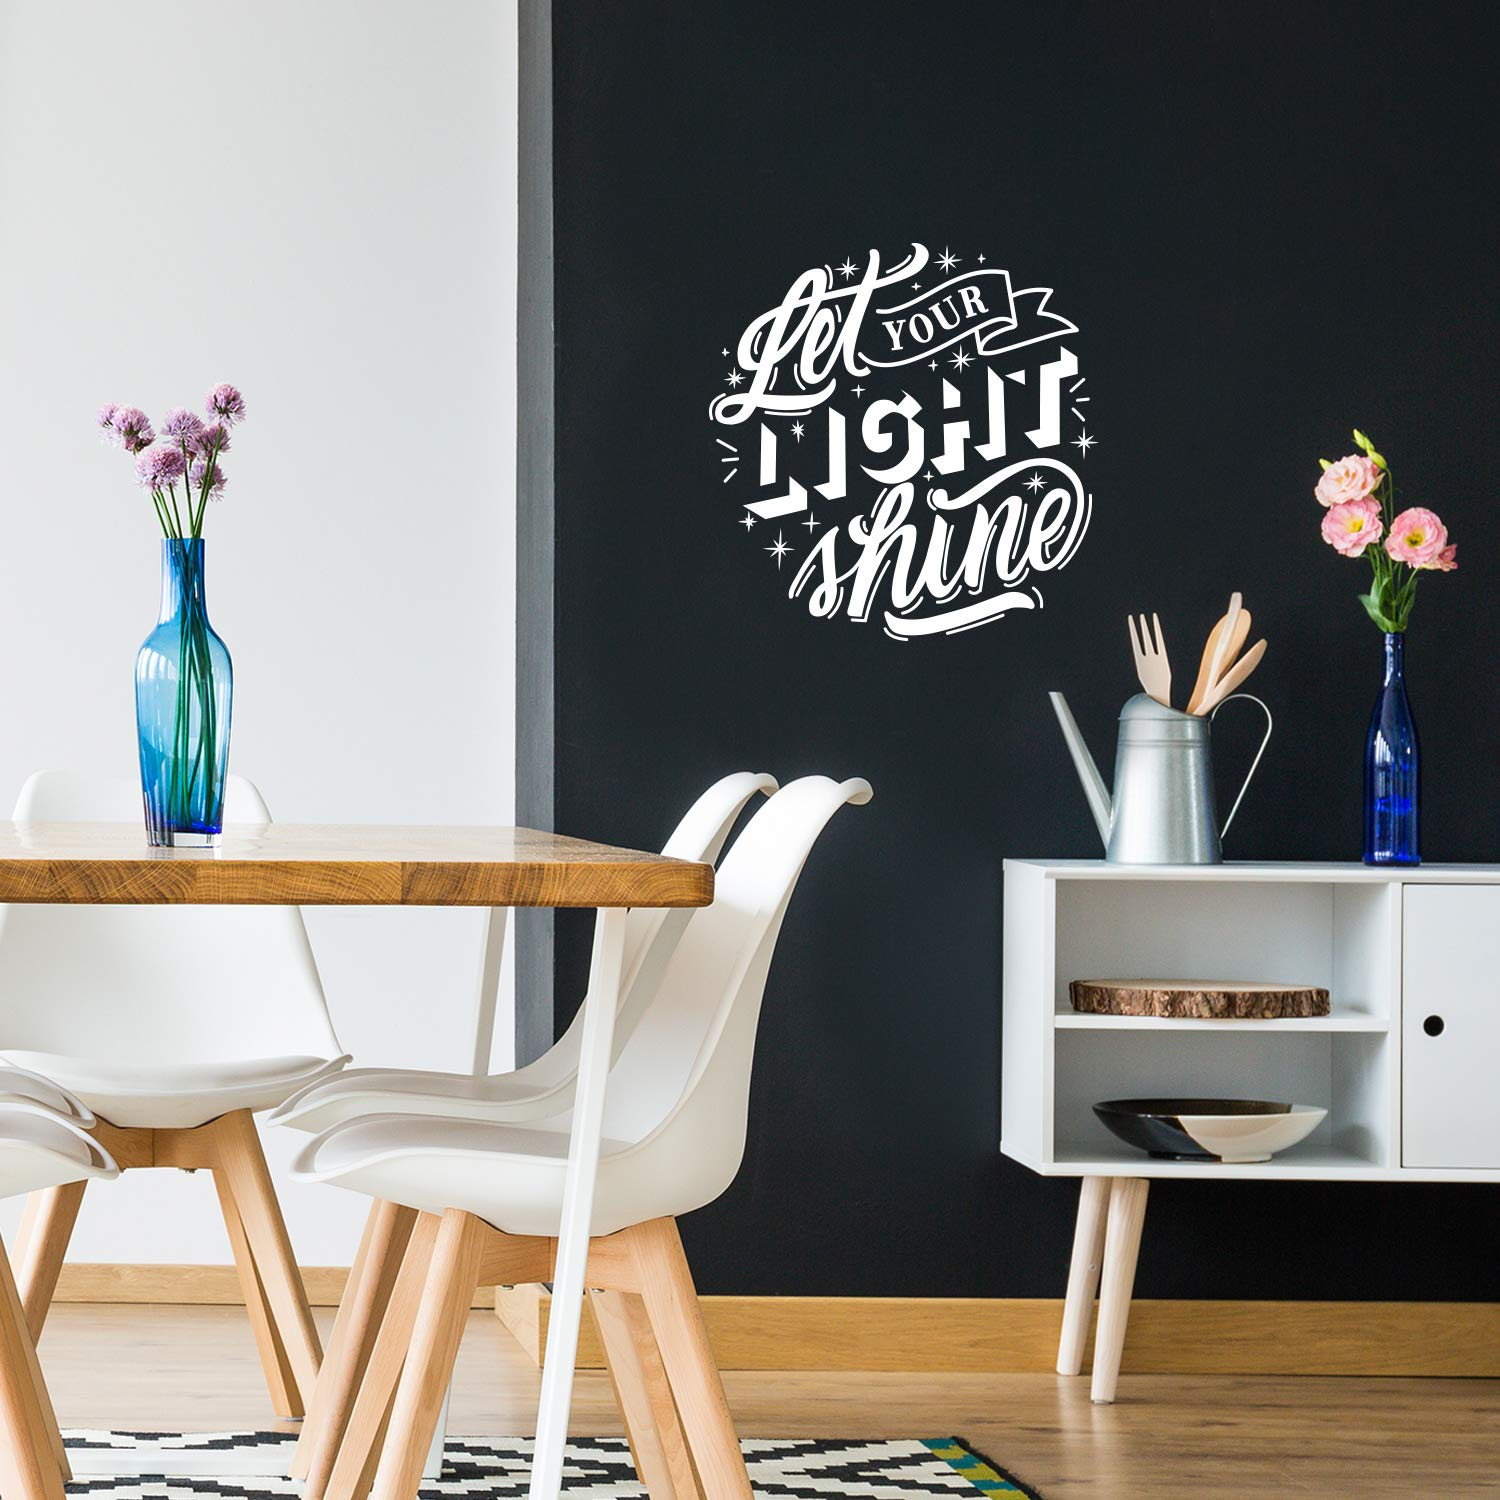 Hot english quotes Wall Sticker Home Decoration Accessories For Decor Waterproof Art Decal